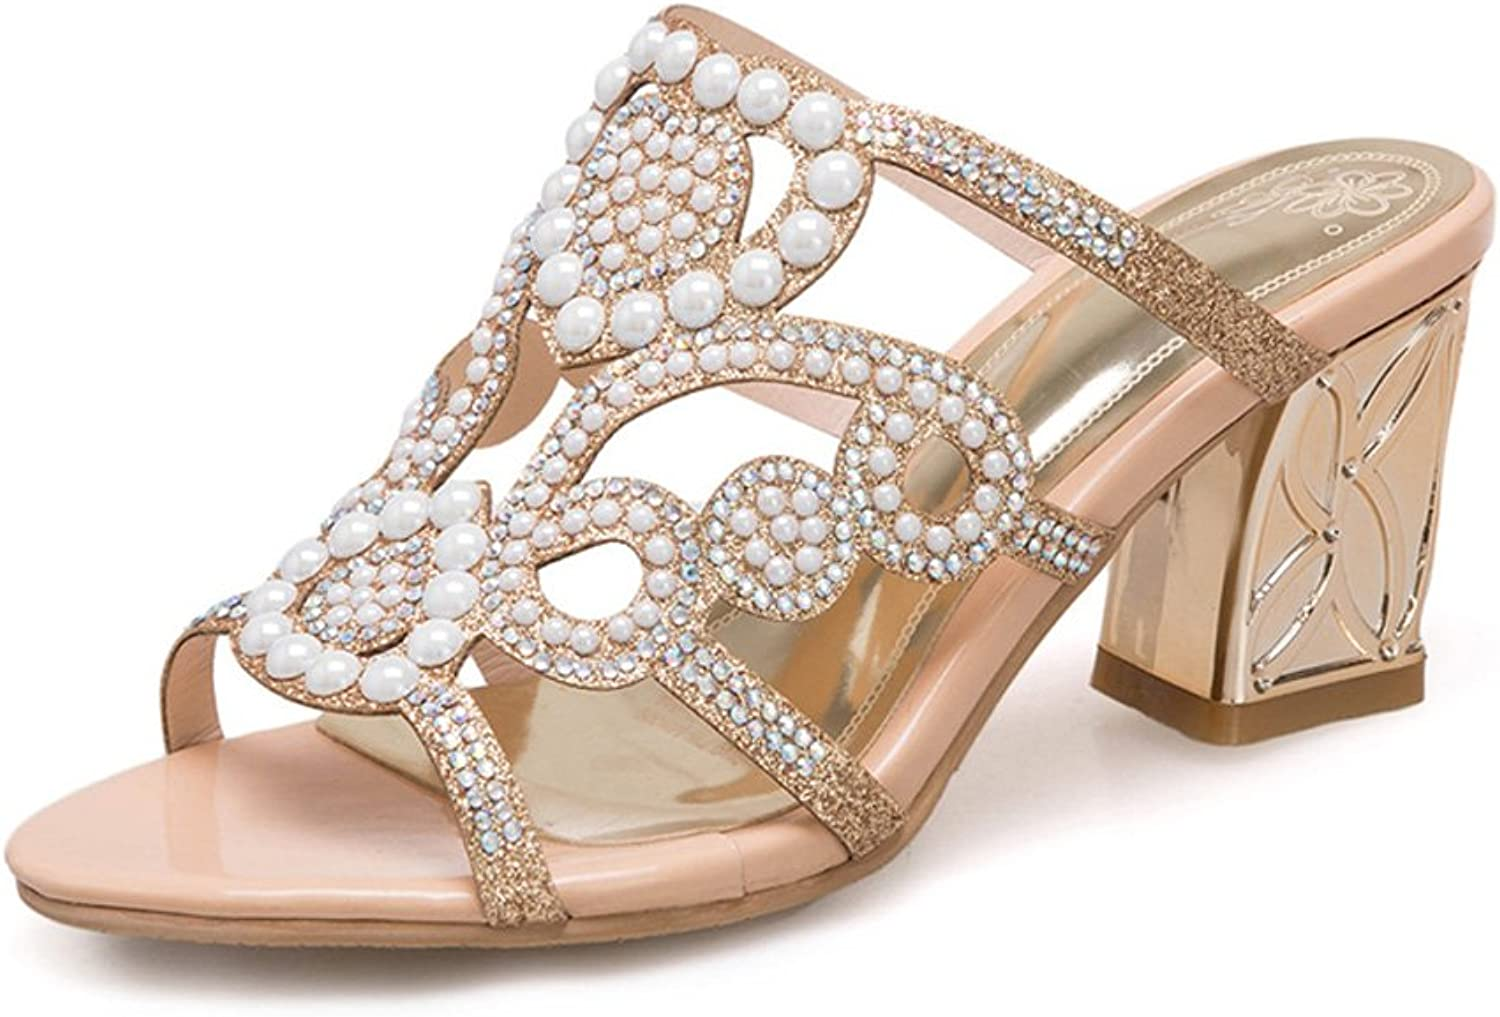 Genepeg Womens Sandals Summer Crystal Party shoes Sexy Cut-Outs Ladies High Heels shoes gold